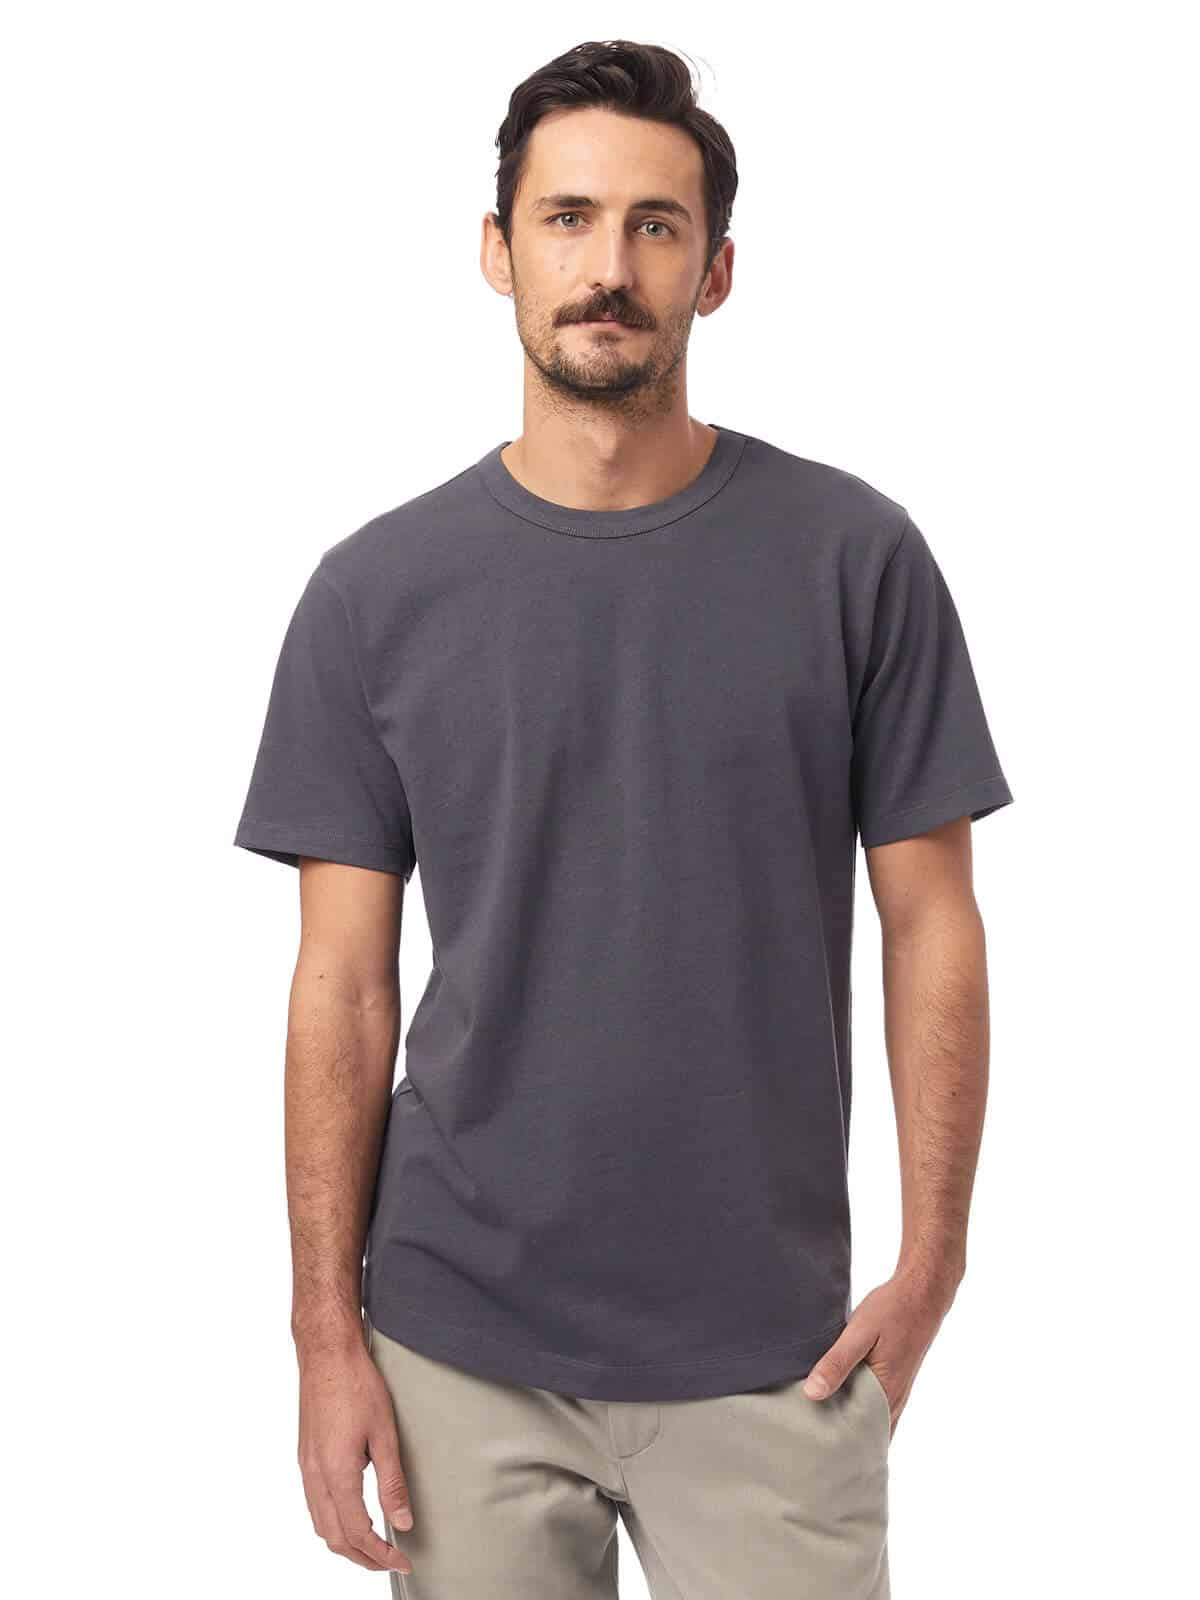 Person wearing a grey t-shirt and beige pants.